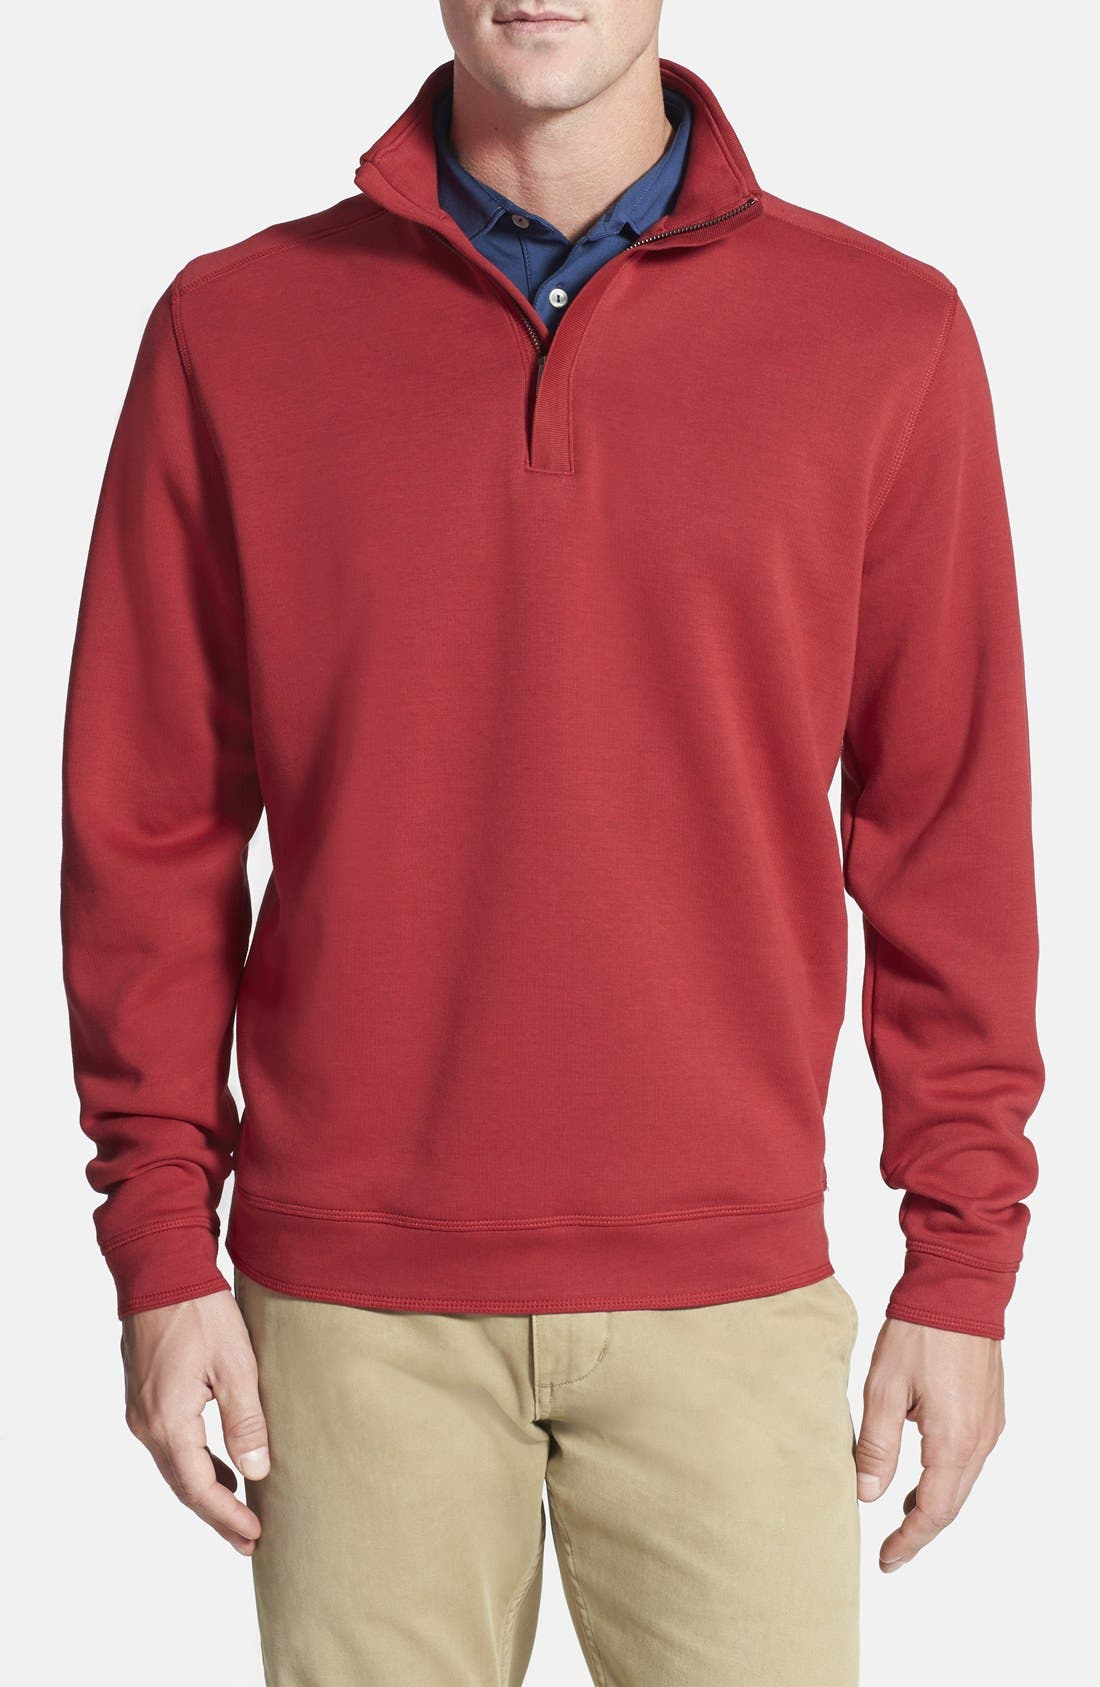 CUTTER & BUCK 'Decatur' Pima Cotton Pullover